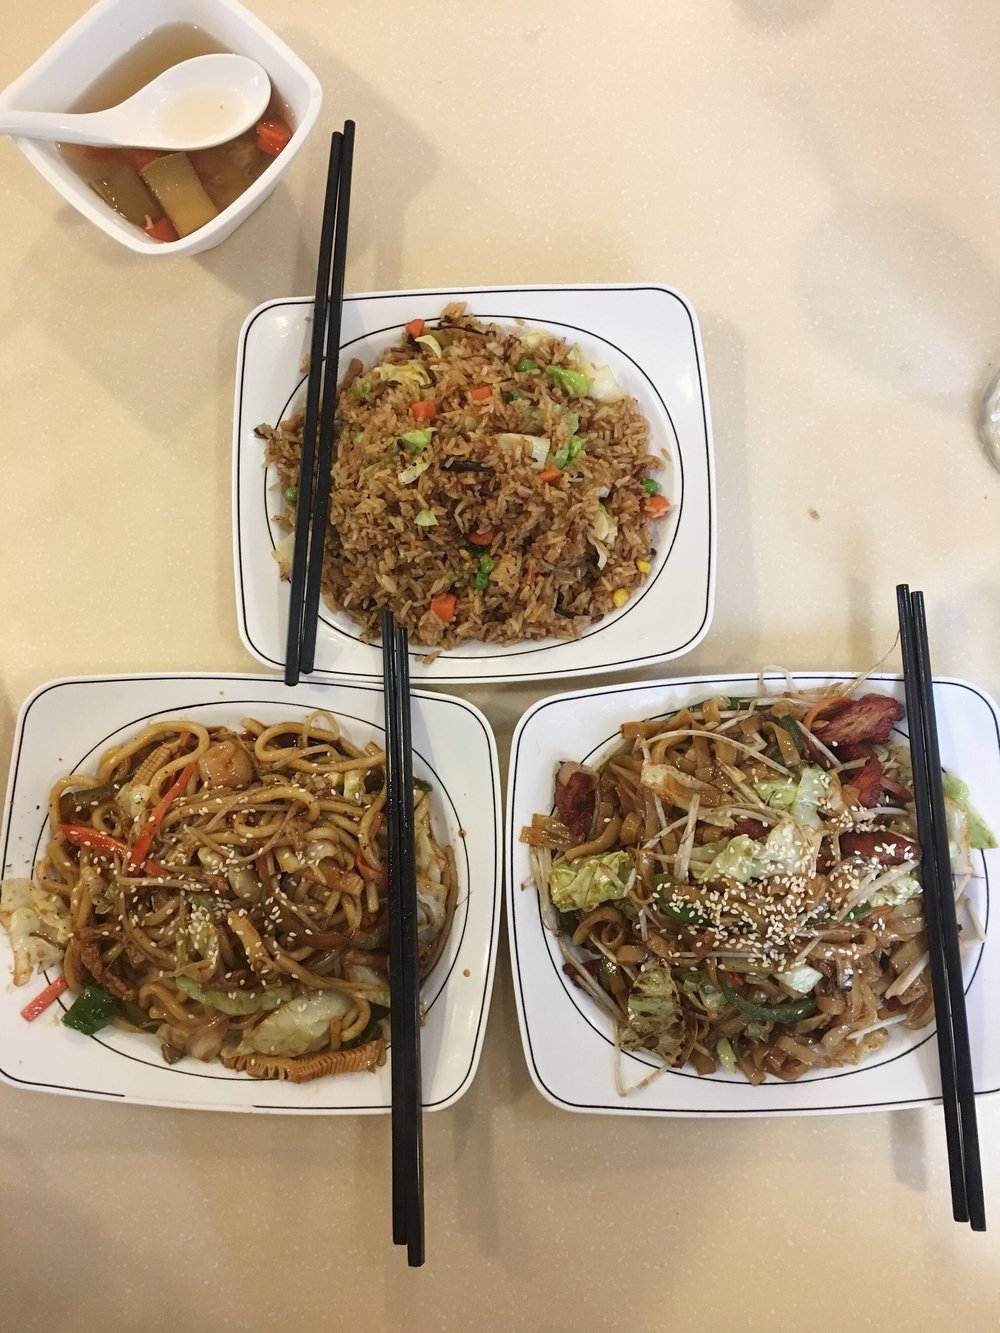 Fried Flat Noodles with Vegan Barbecue Pork from Loving Hut